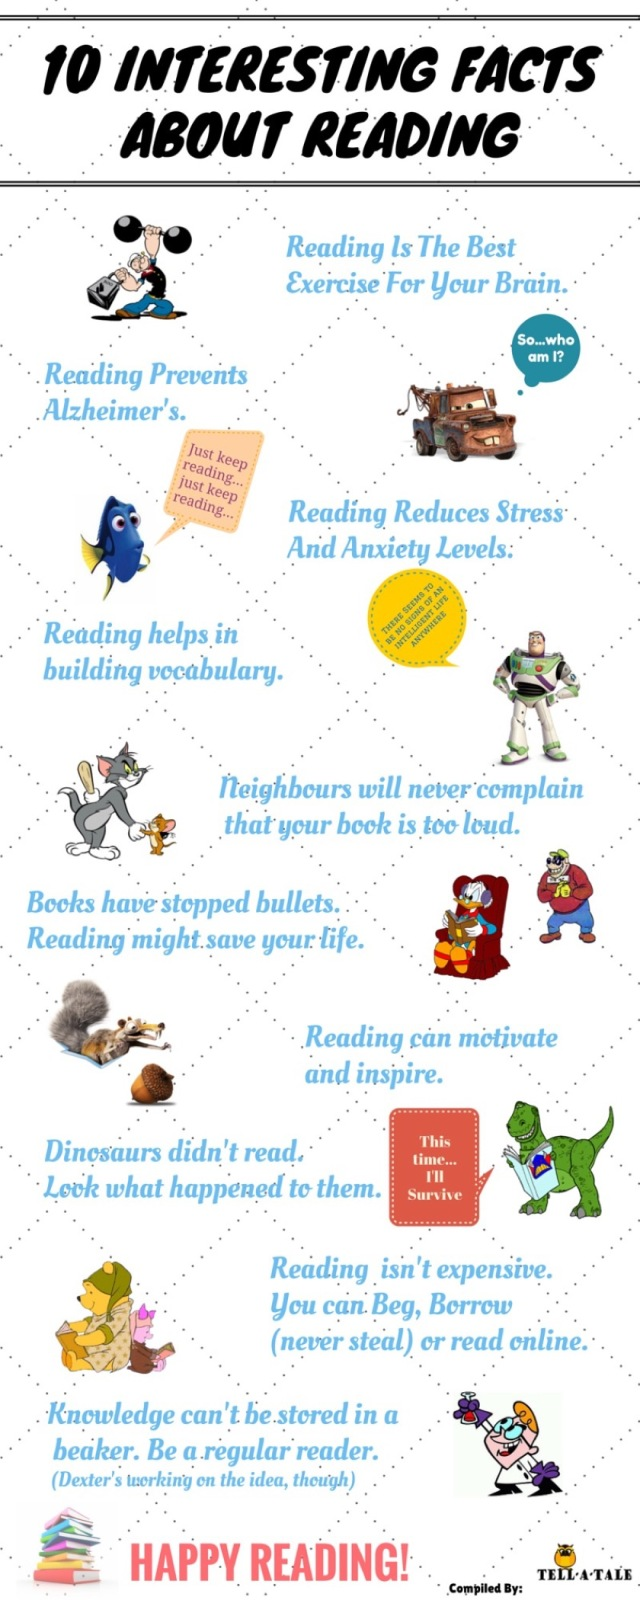 10 interesting facts about reading.jpg